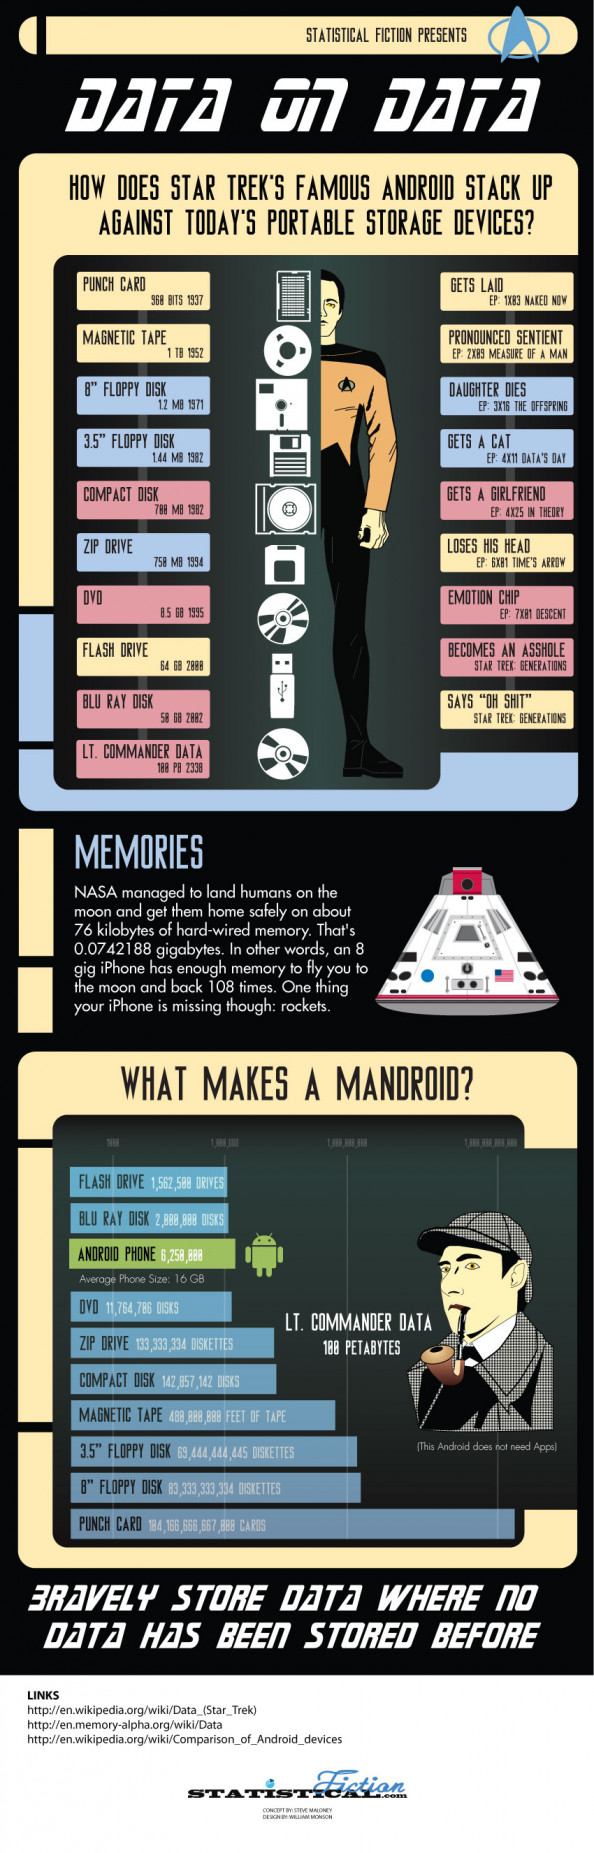 Data on Data: Star Trek's Commander Data Can Kick your Android's Ass Infographic